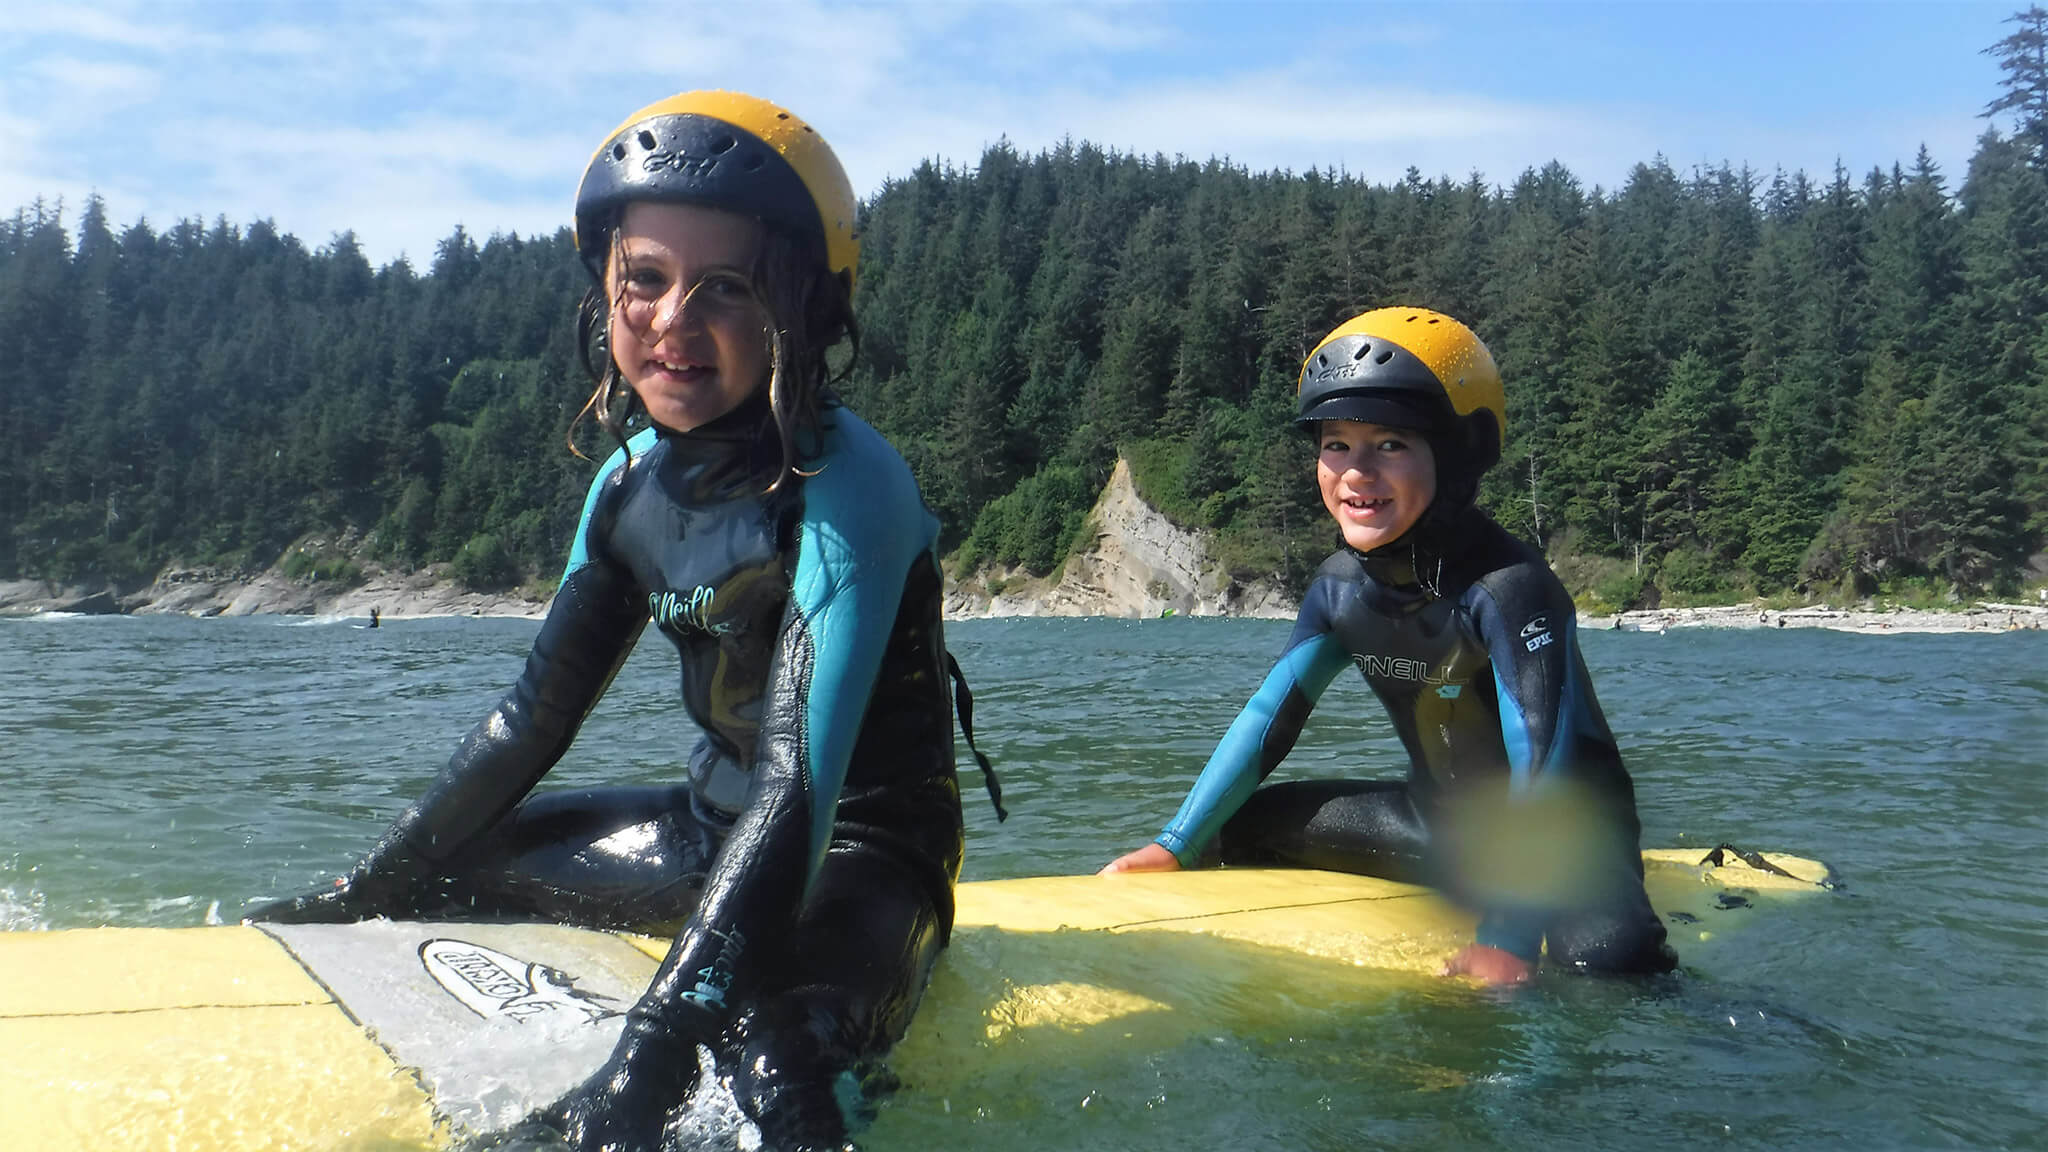 KID'S SURF & BODYBOARDING LESSONS